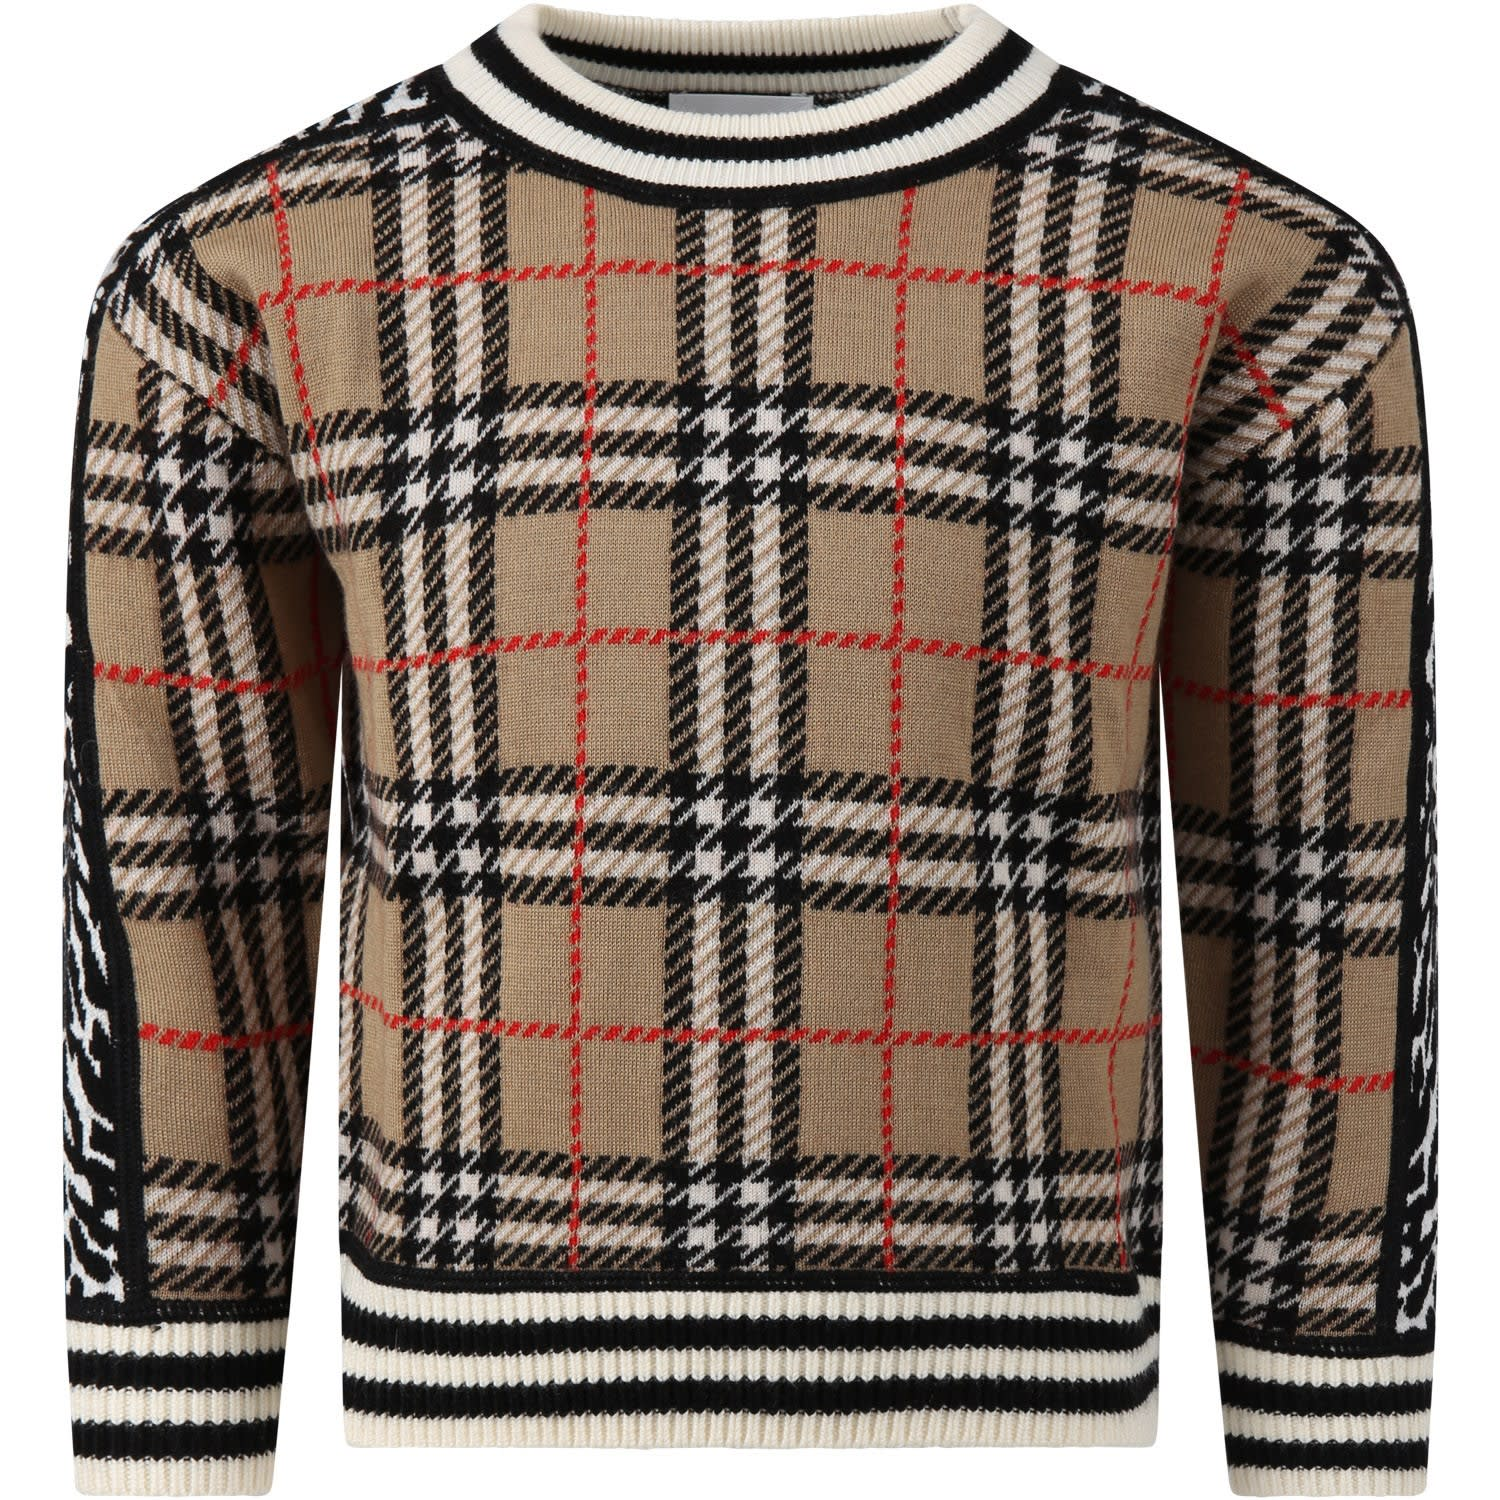 Burberry Beige Sweater For Kids With Animalier Prints